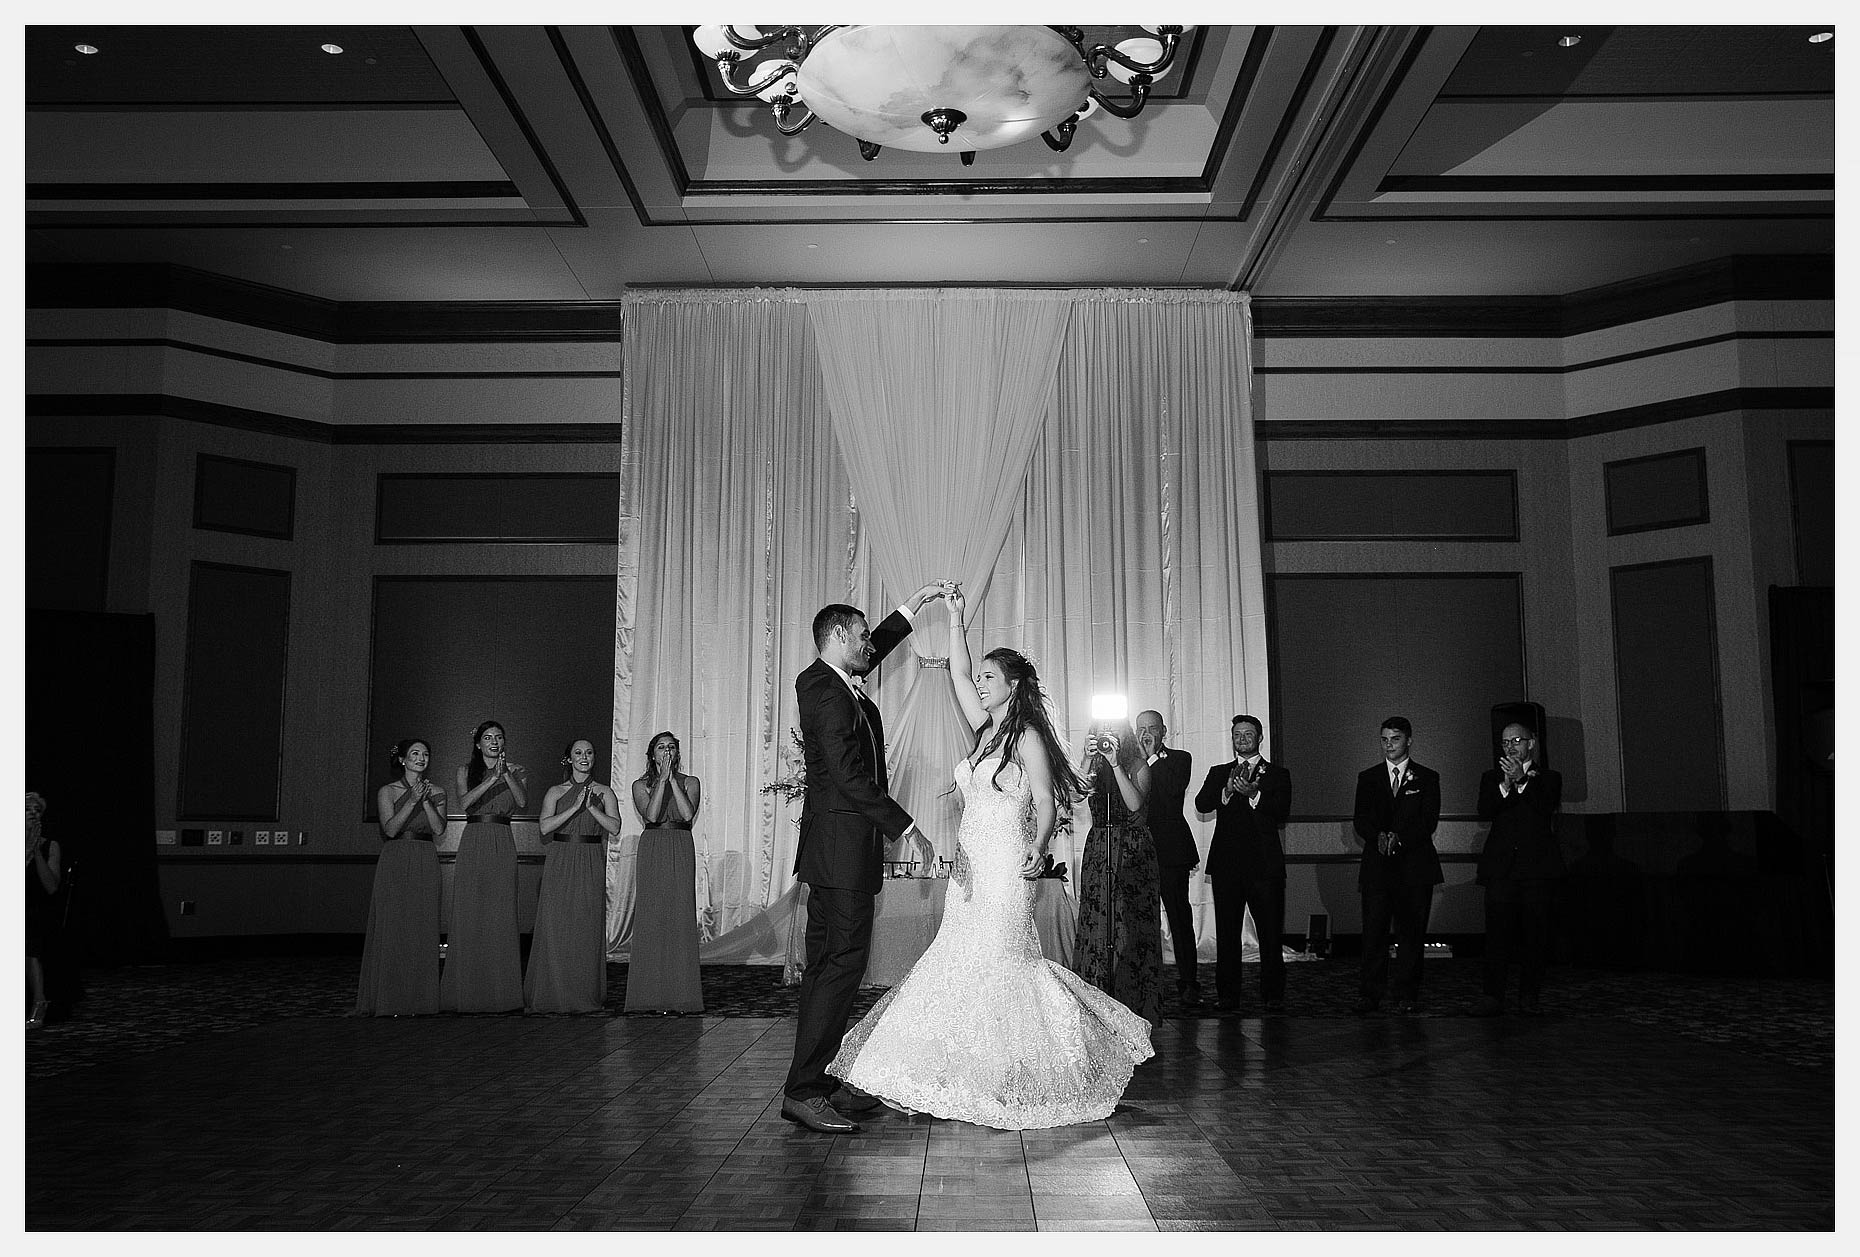 Madison-Carver-Wedding-by-Stephen-Masker-Photography-0105